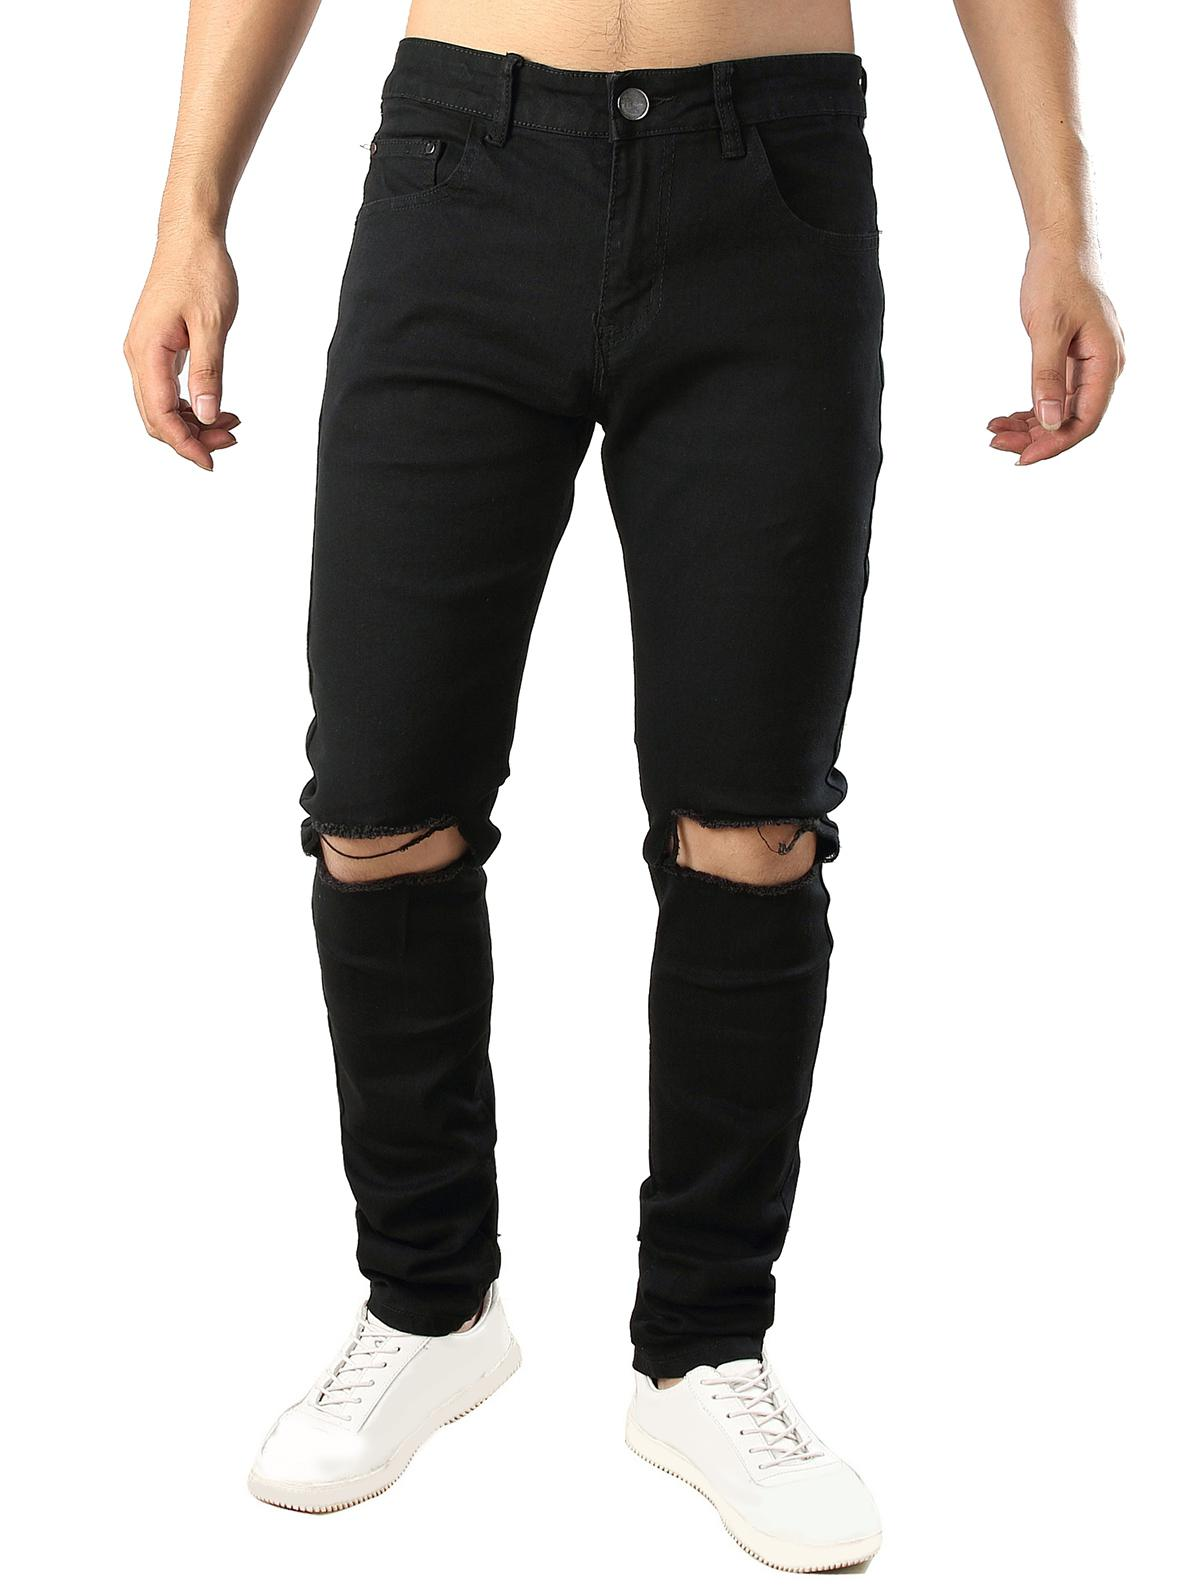 Solid Color Destroy Hole Long Casual Jeans фото